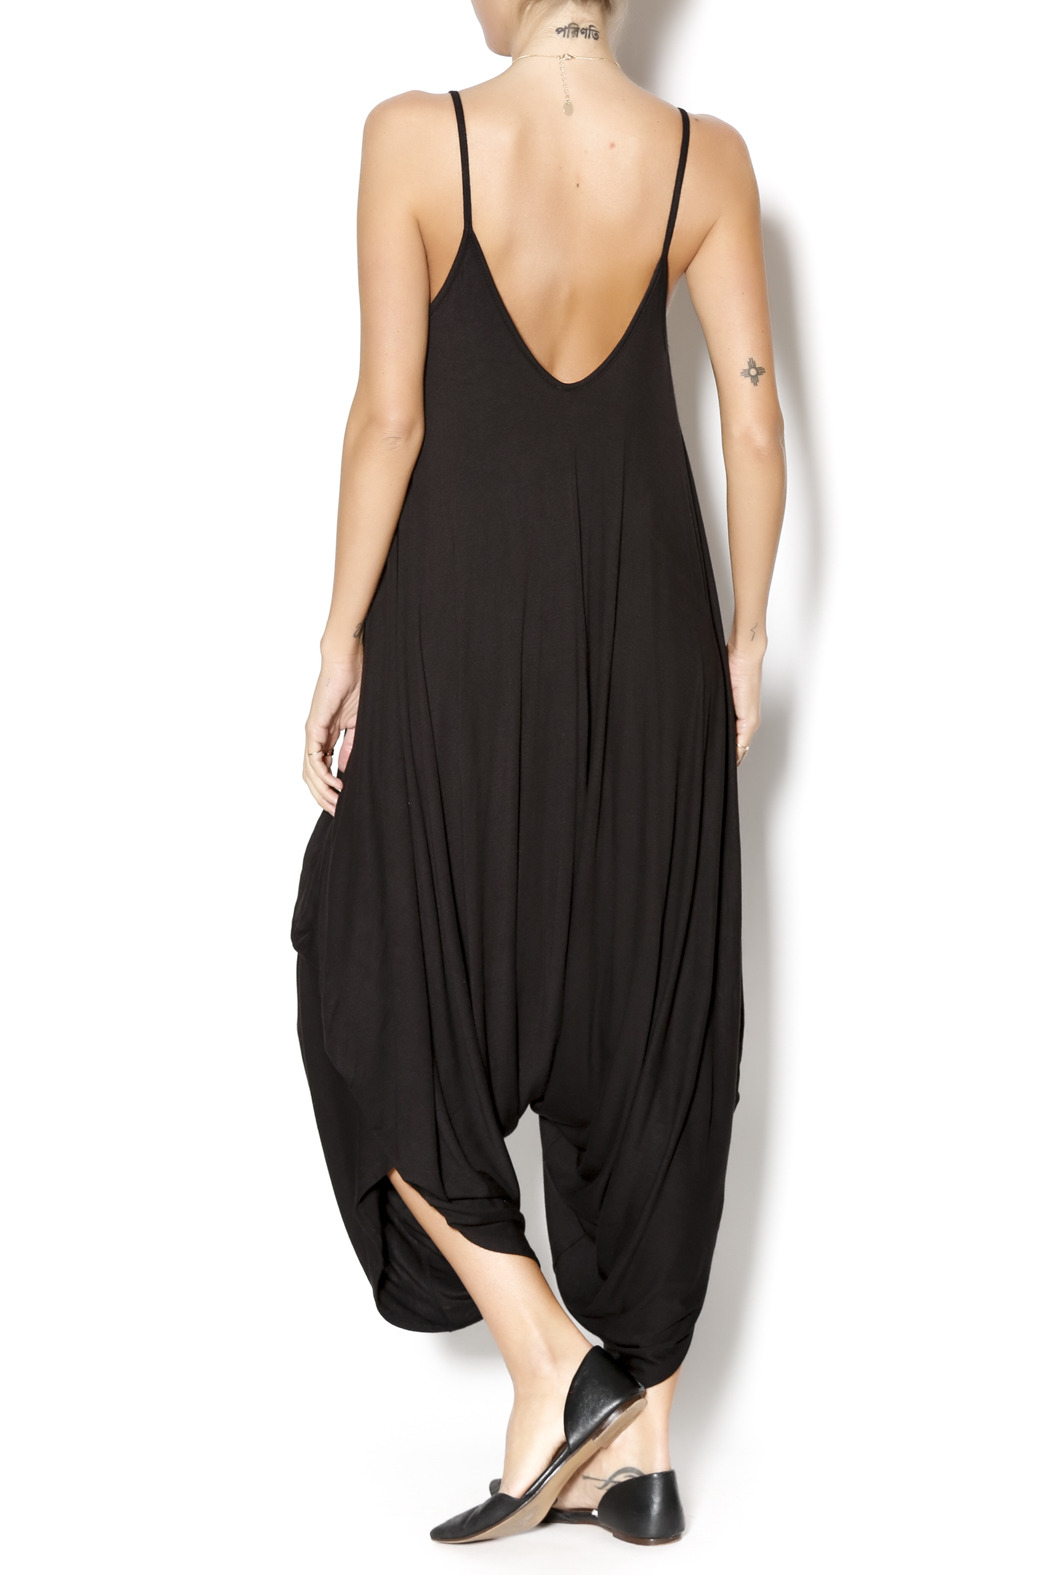 Love in Genie String Jumpsuit from New York City by Local ...